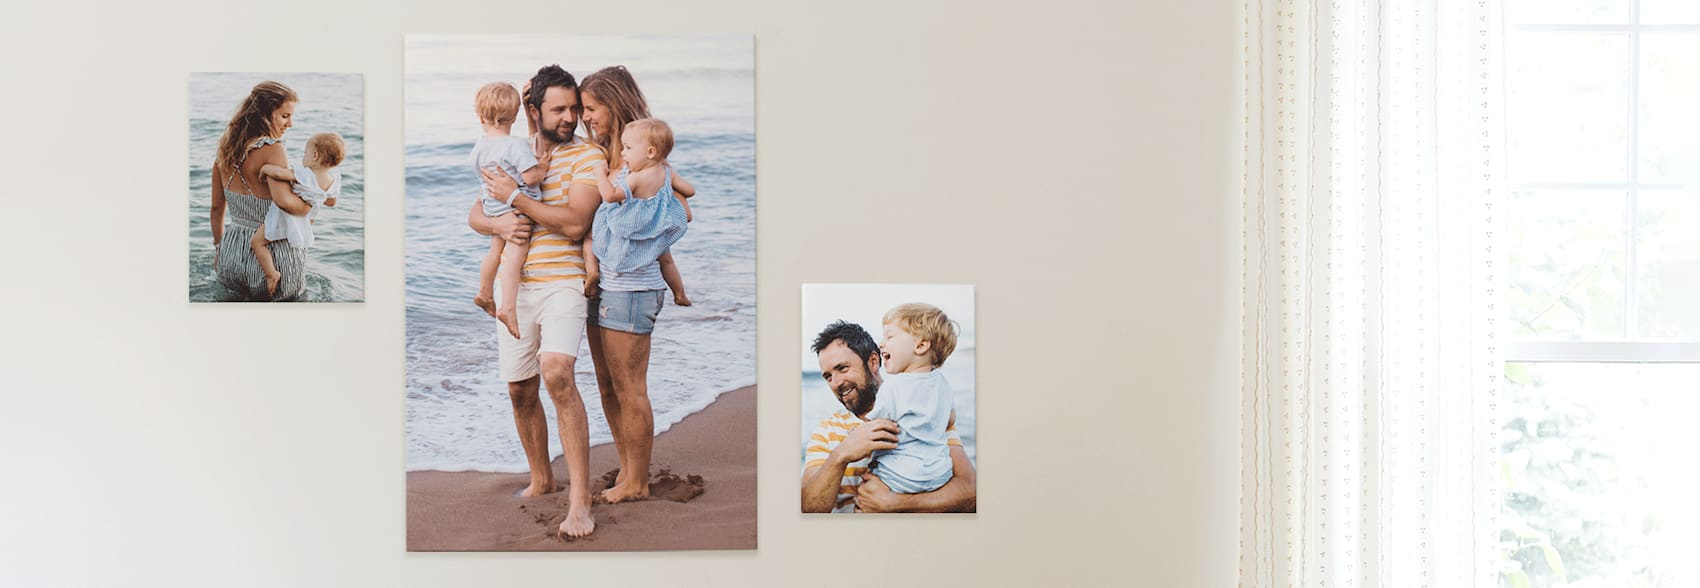 Canvas photo printing online